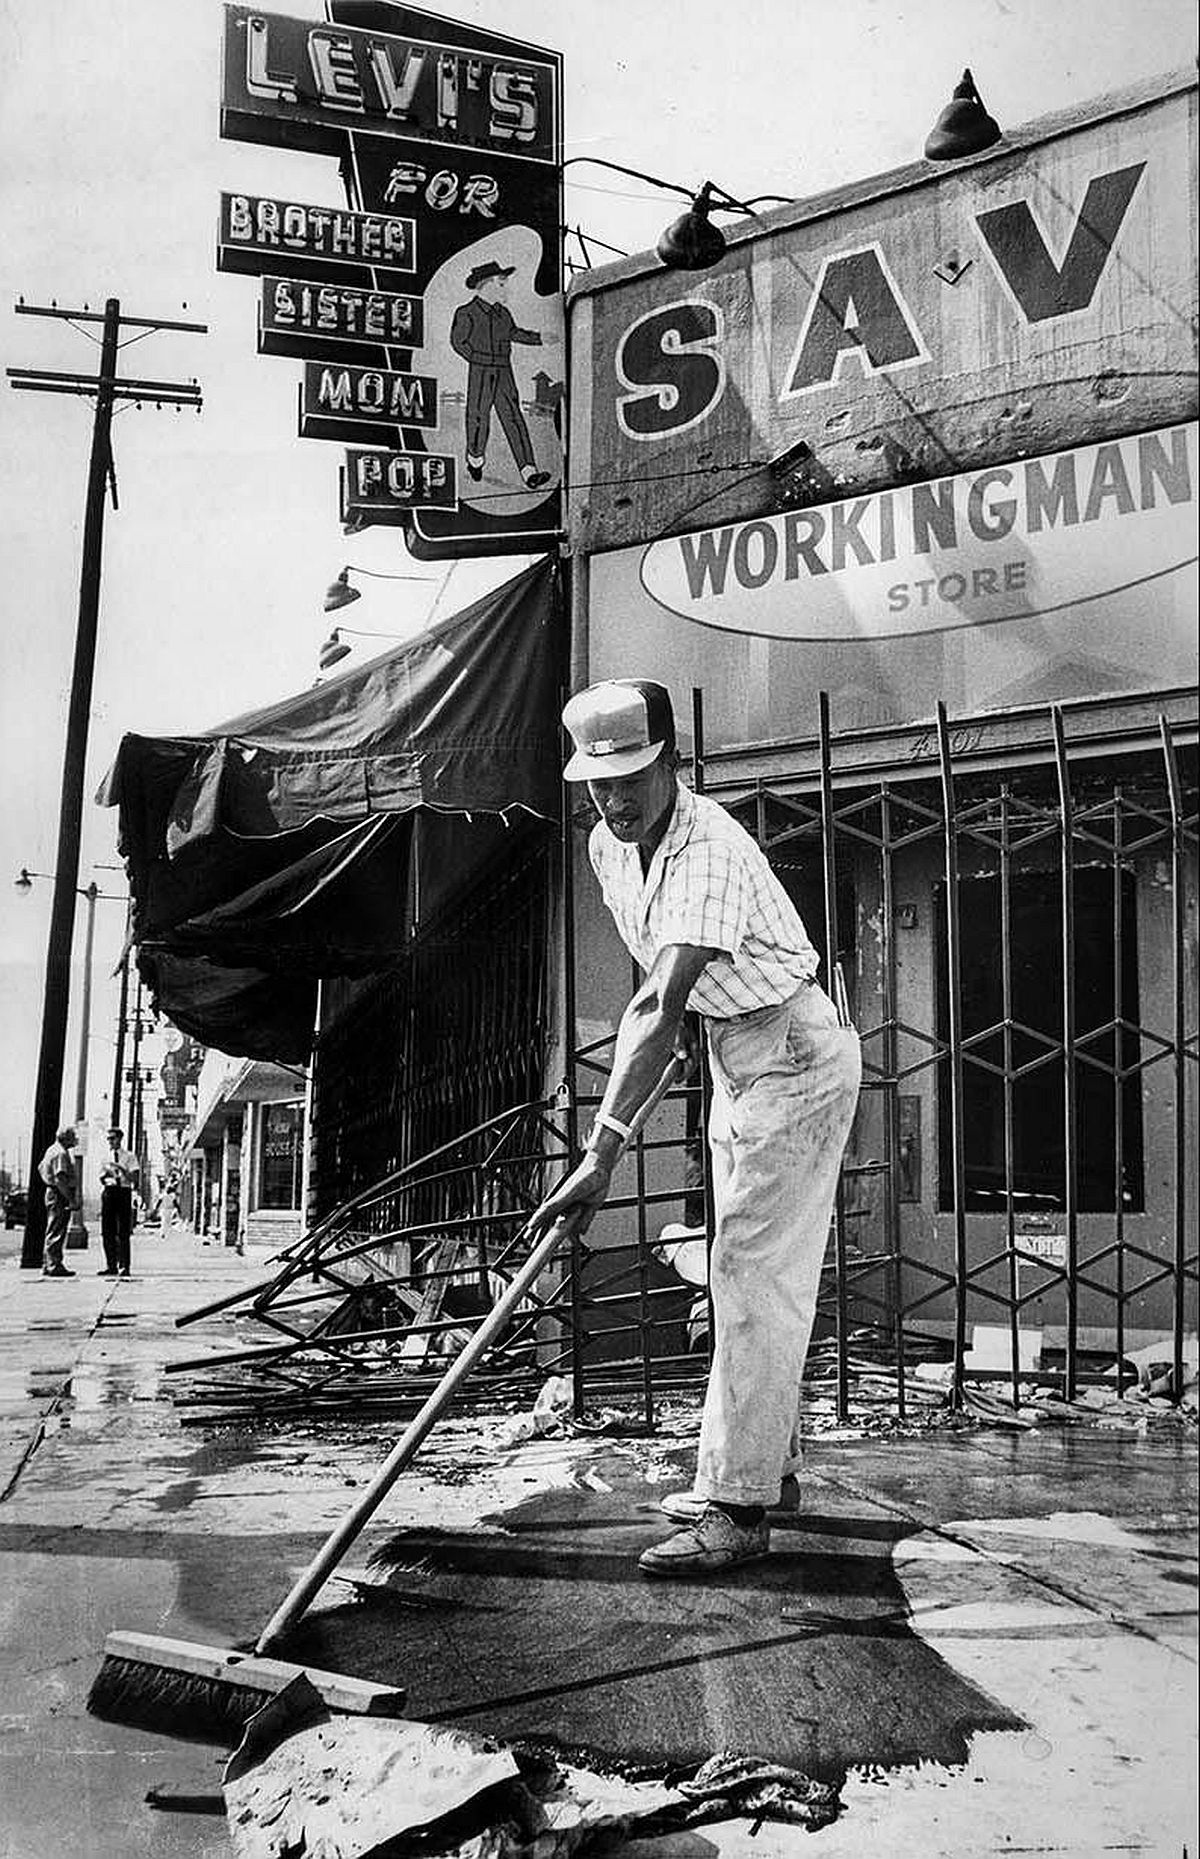 Aug. 17, 1965: Charles Vance sweeps up the litter in front of stores at 45th St. and Central Ave. following the Watts Riots.